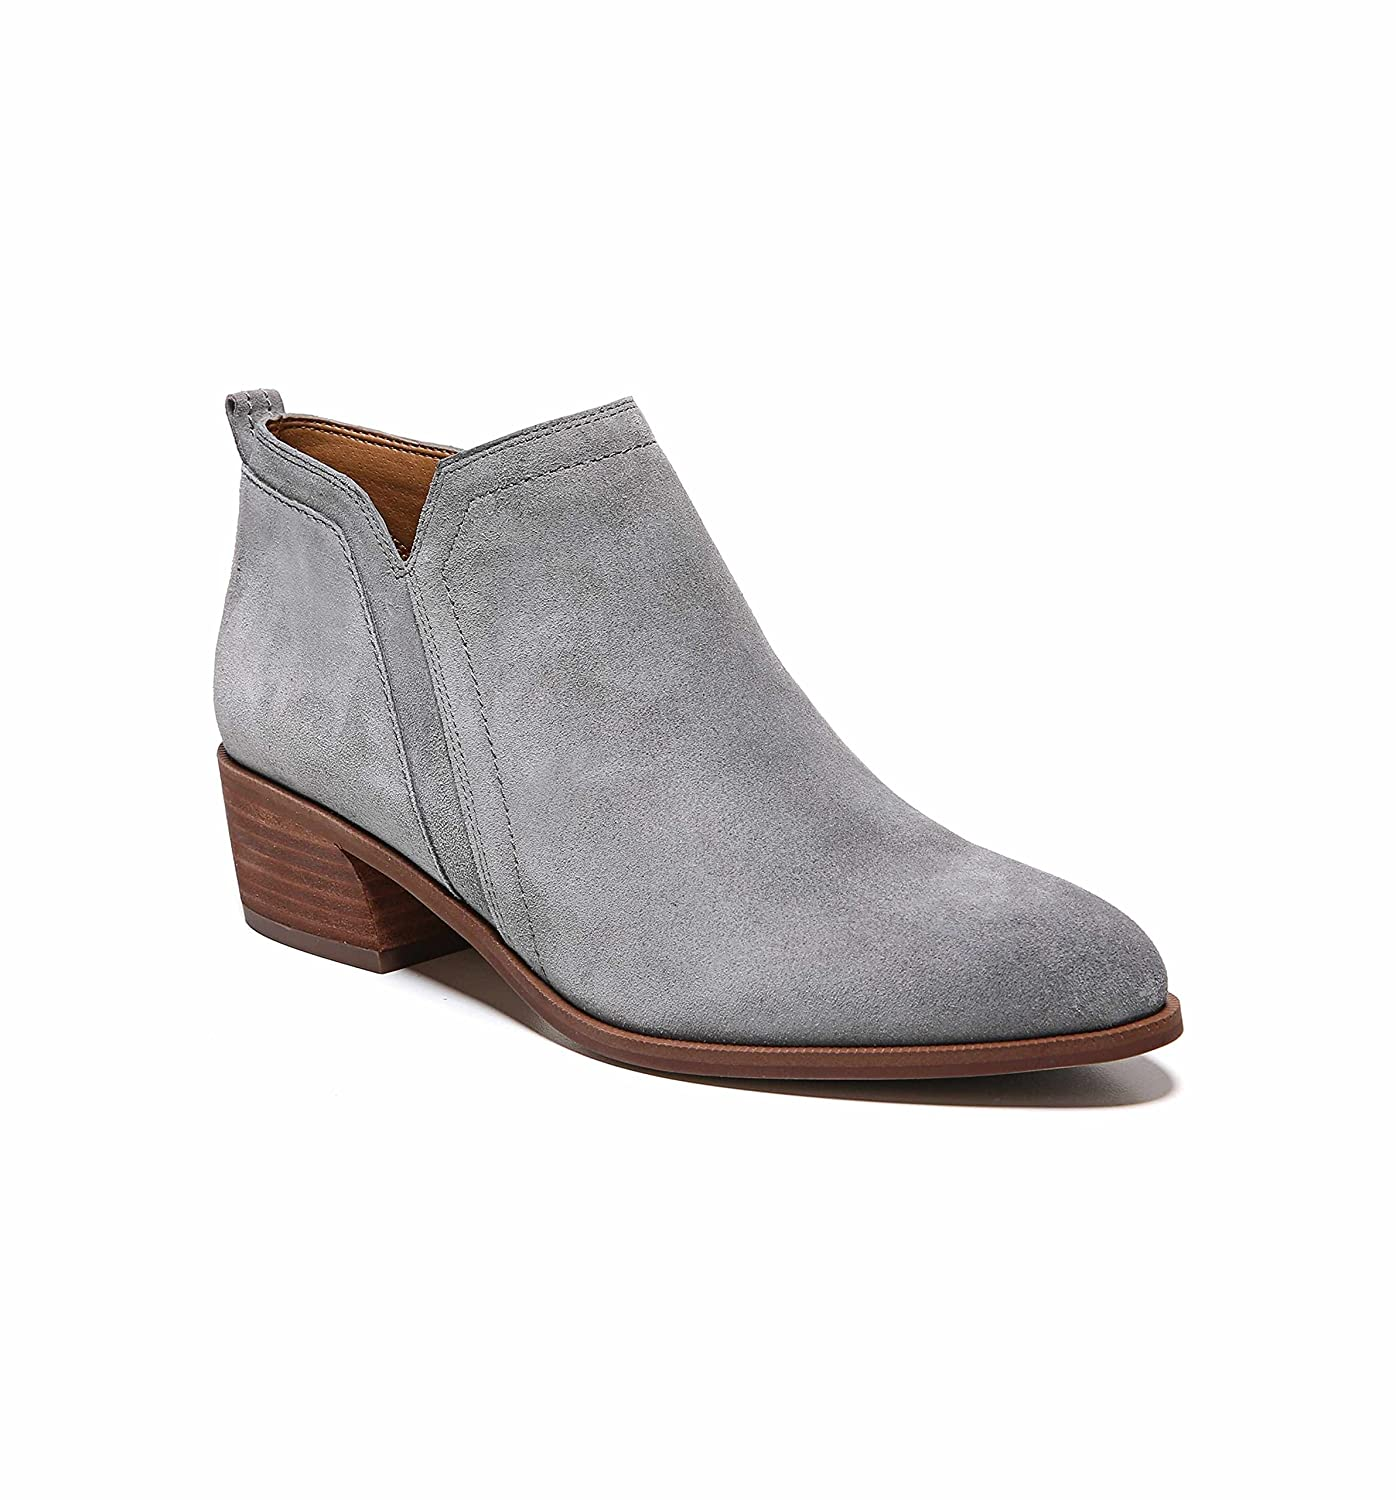 Franco Sarto Womens Paivley B079FYBSTR 8 B(M) US|Estate Grey